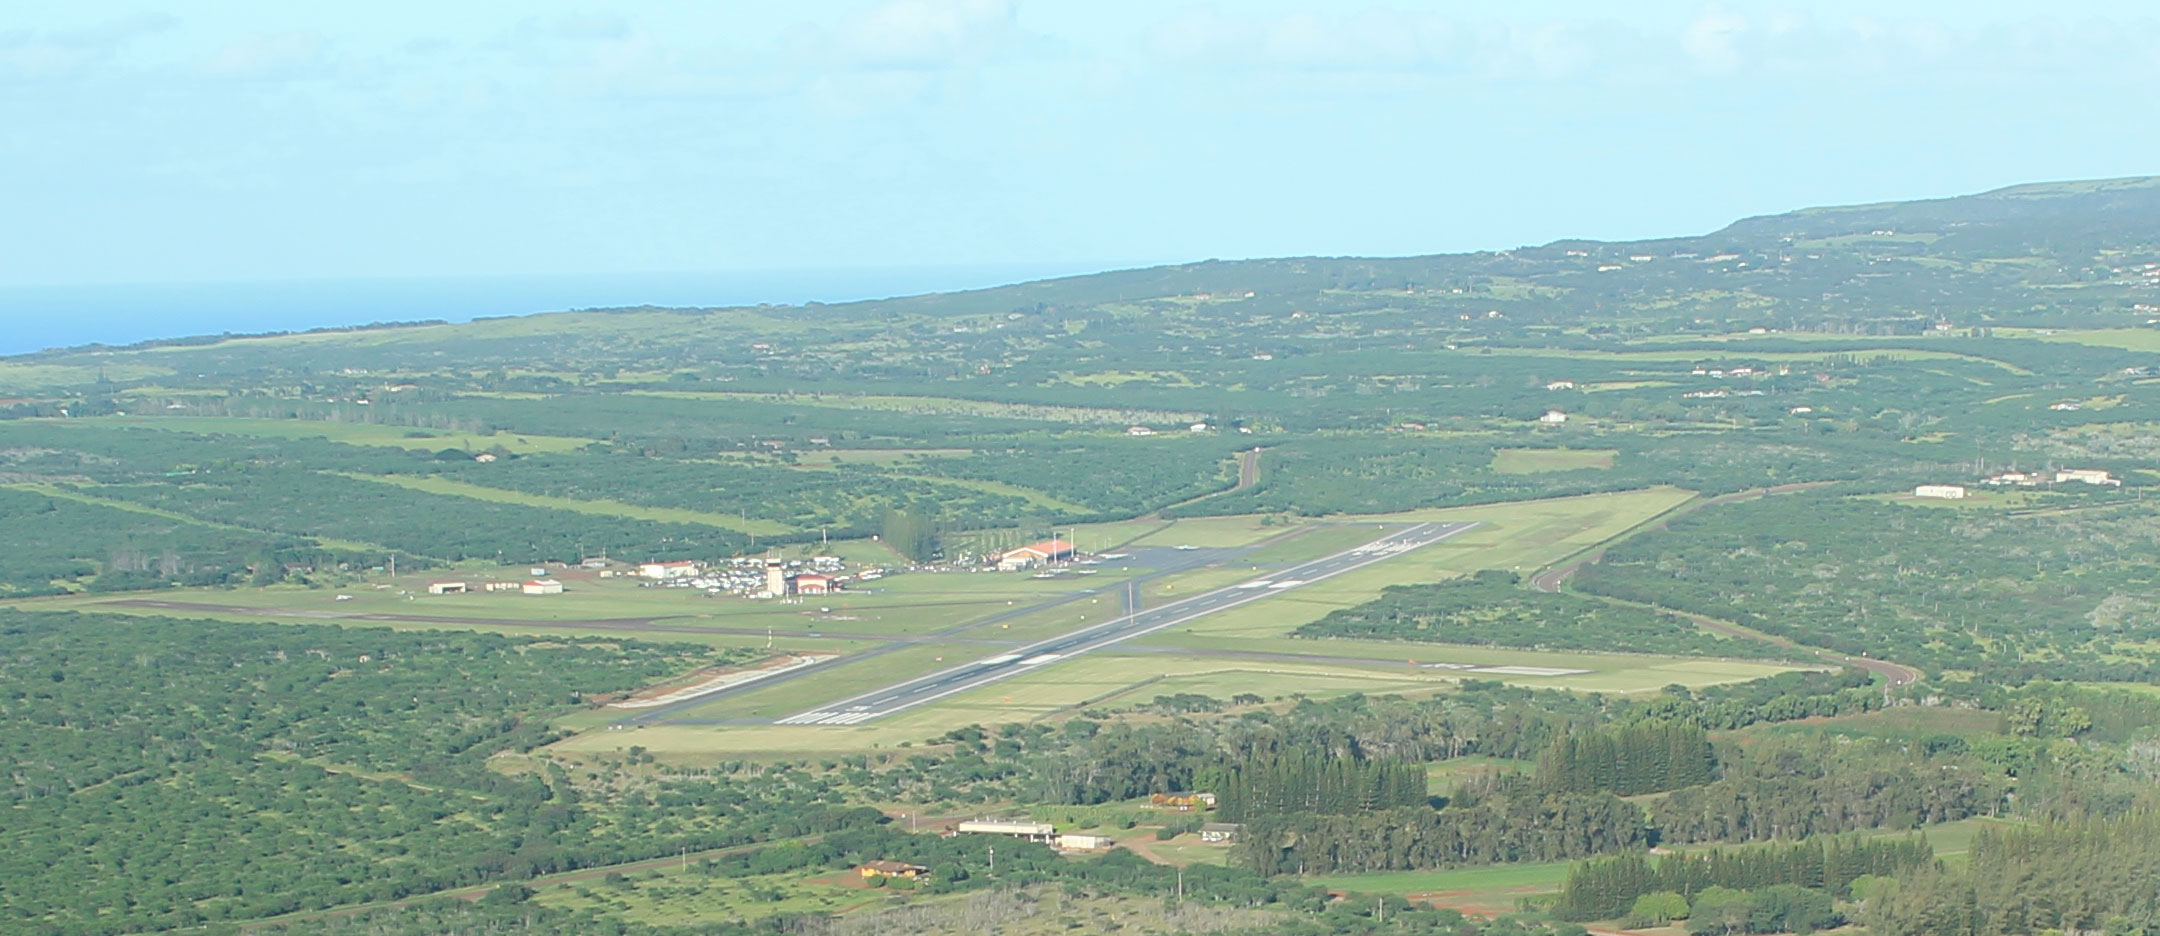 Aerial view of Ho`olehua Airport